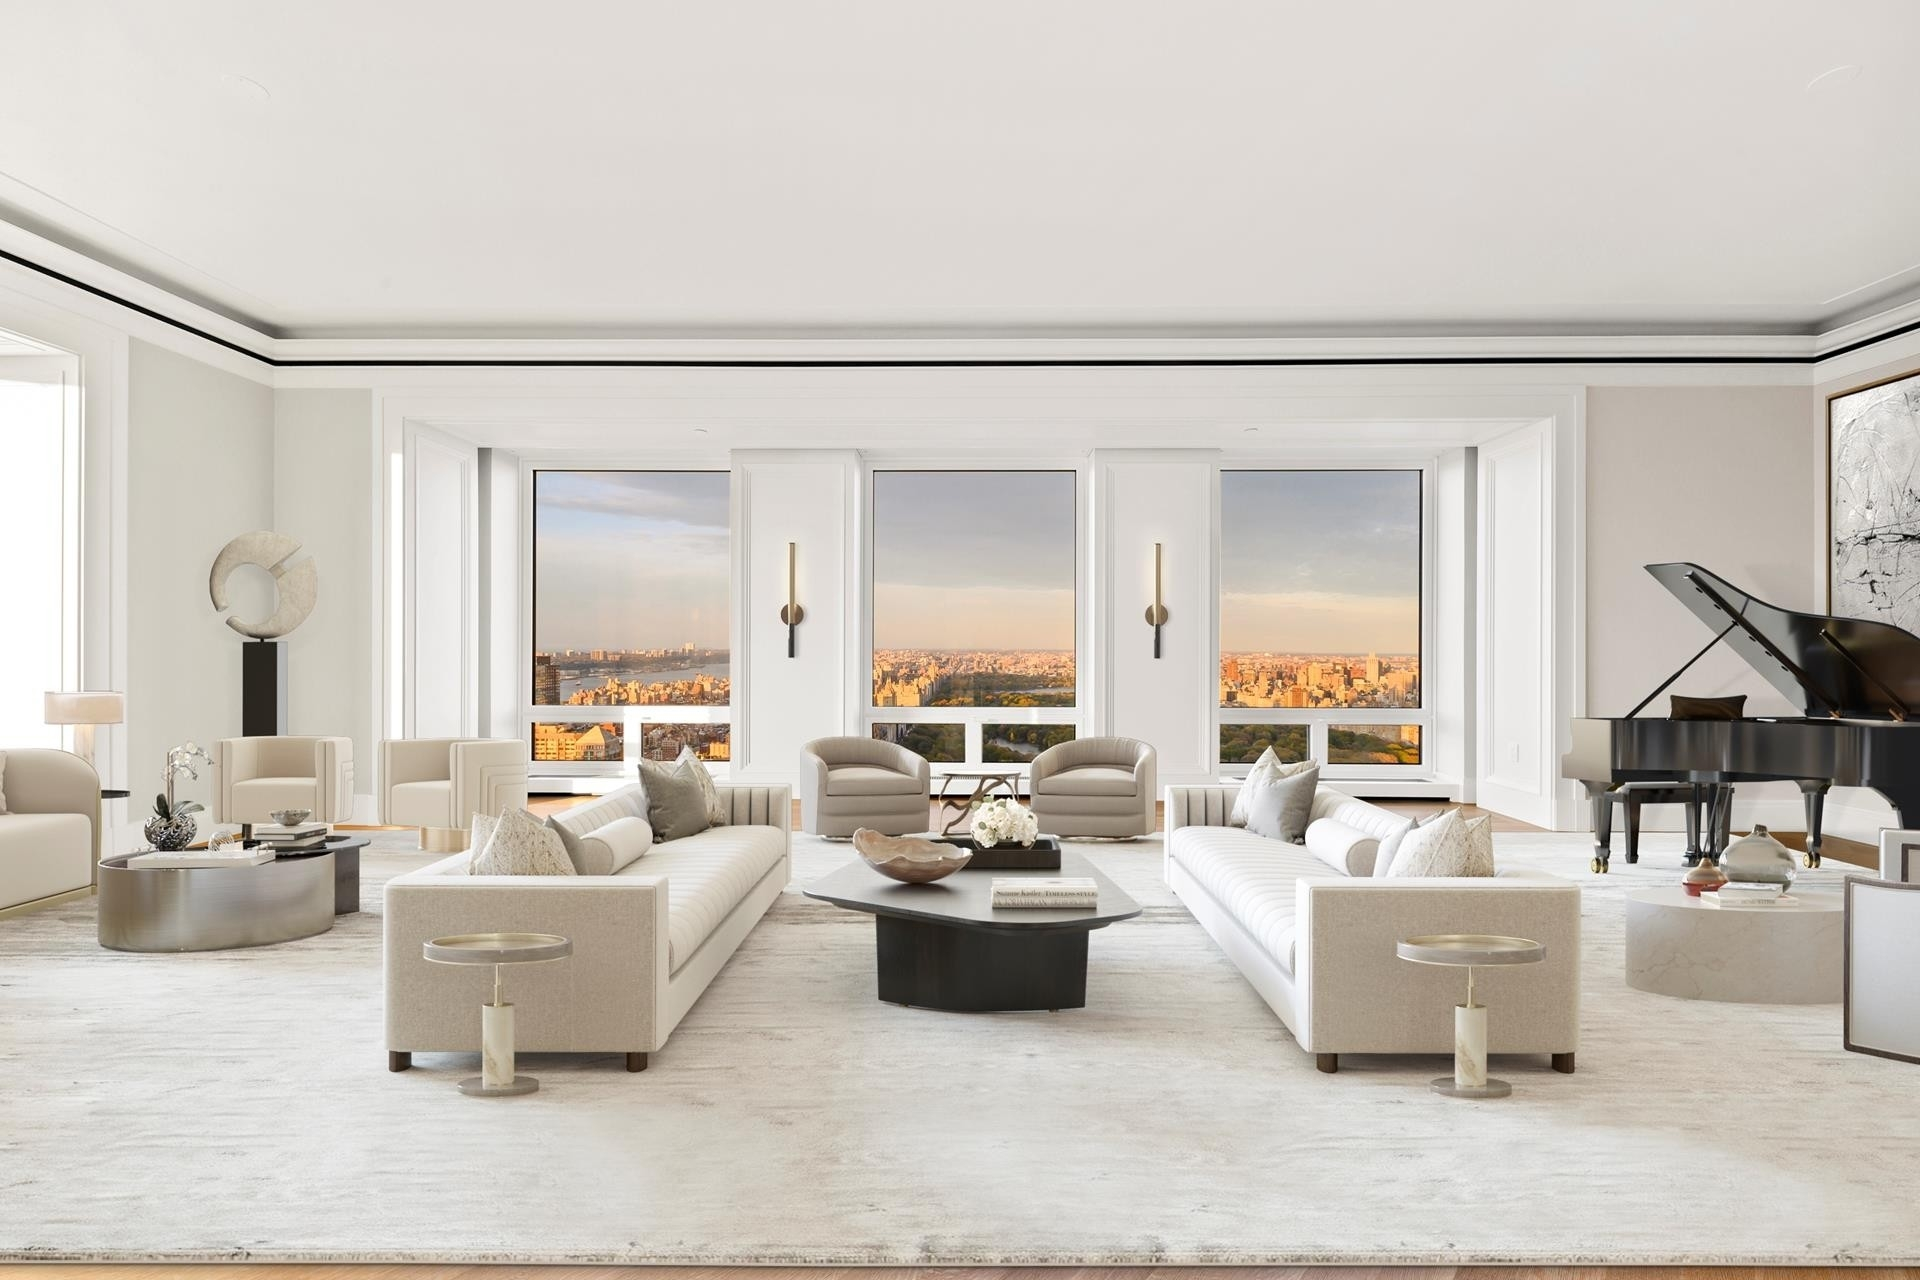 1. Condominiums for Sale at 220 CPS, 220 CENTRAL PARK S, 54/55A Central Park South, New York, NY 10019